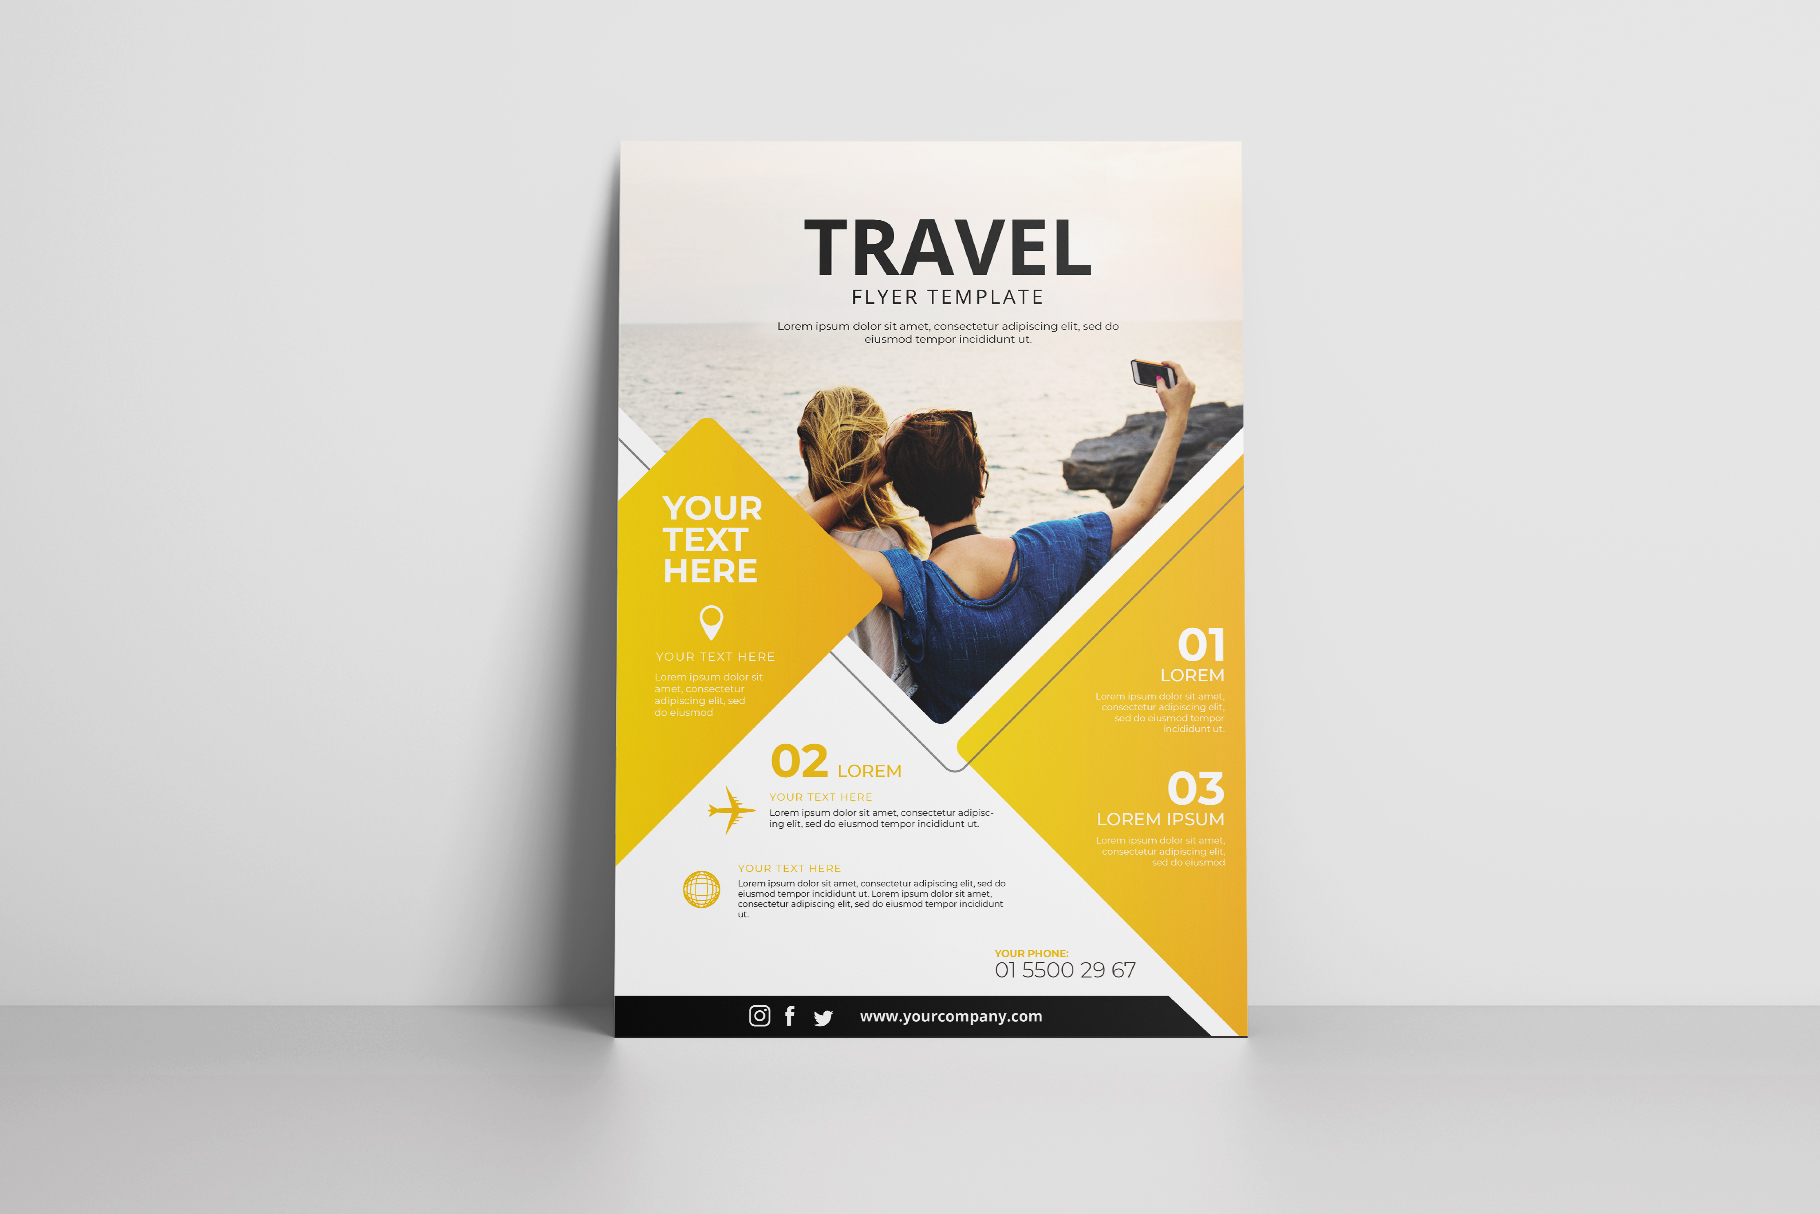 Travel Flyer Vol. 01 example image 3